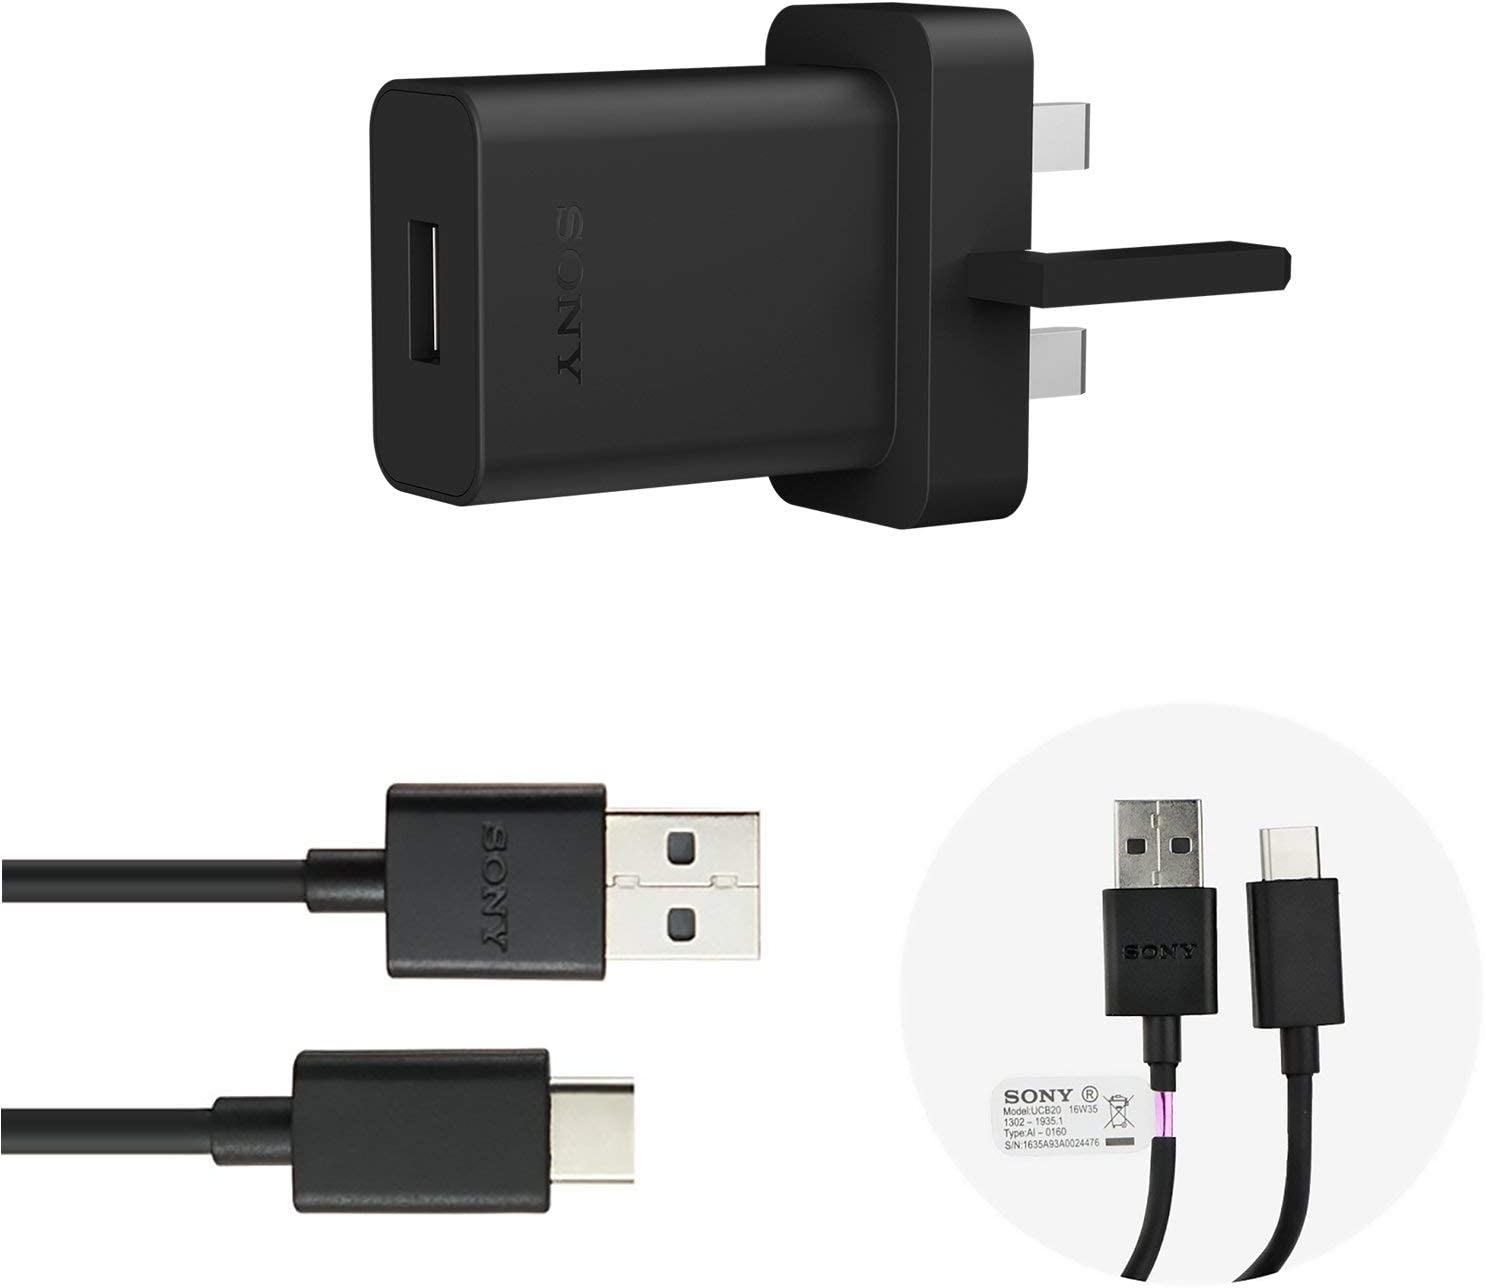 sony xperia mobile phone charger